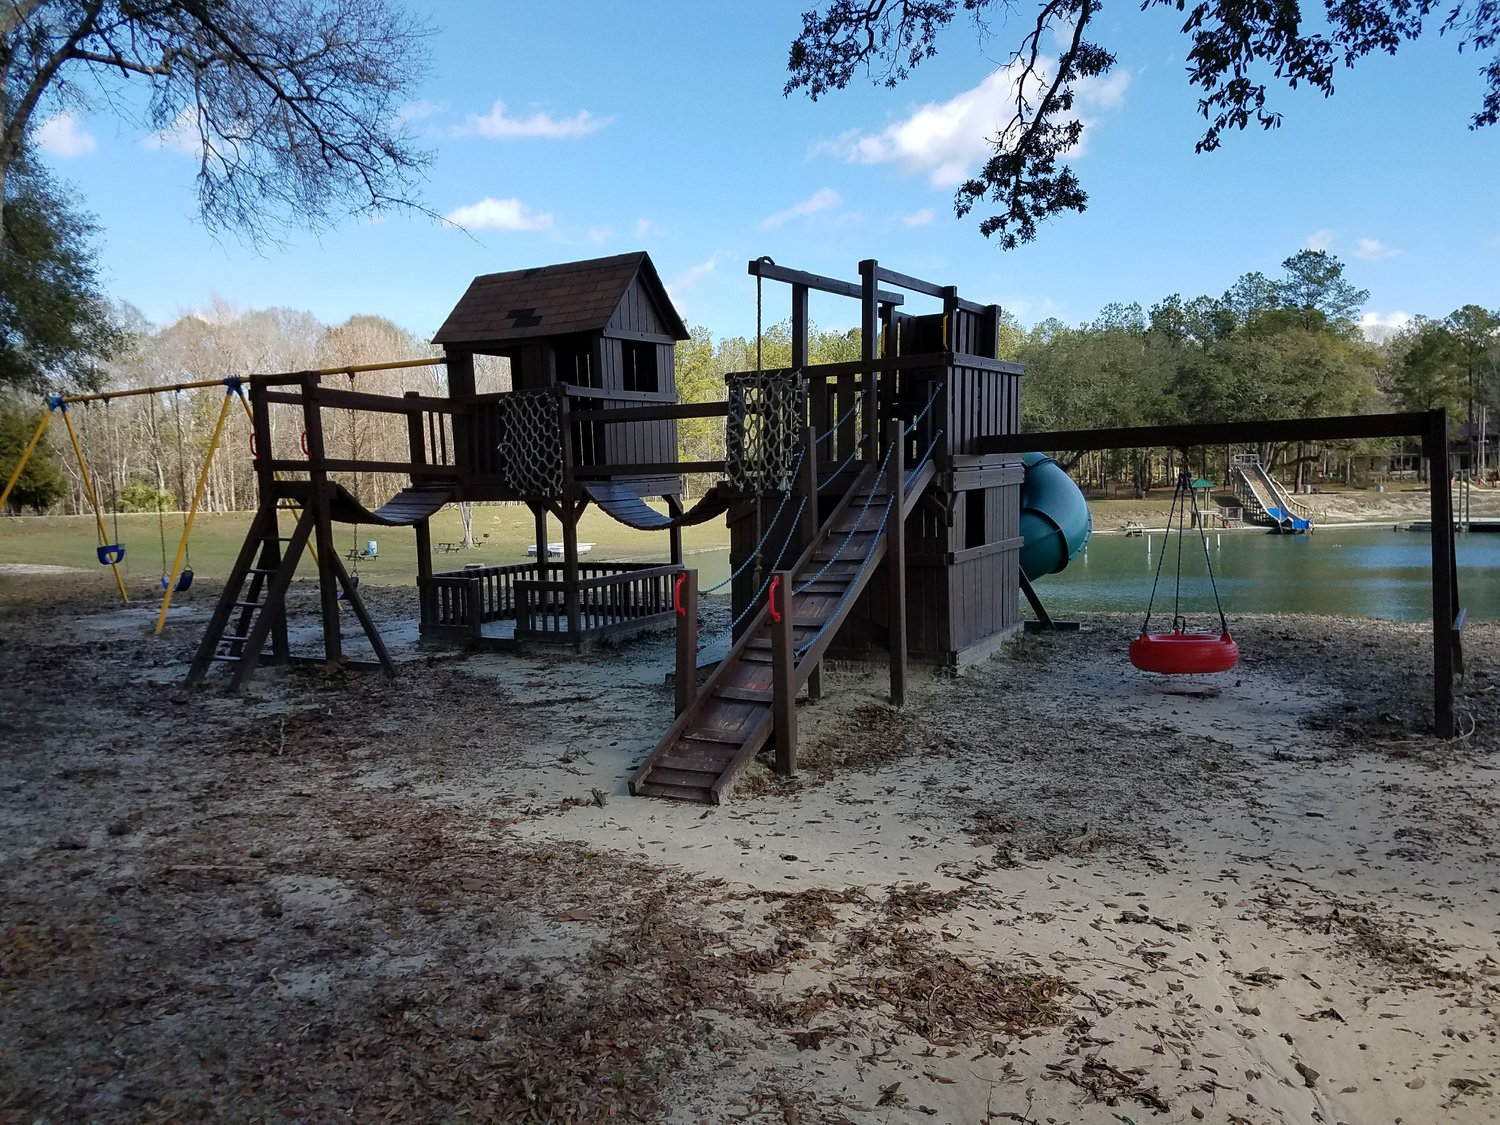 playgrounds - We have 4 children's playgrounds! One near swim basin, one near dive shop, and one near Pinewood Lodge.